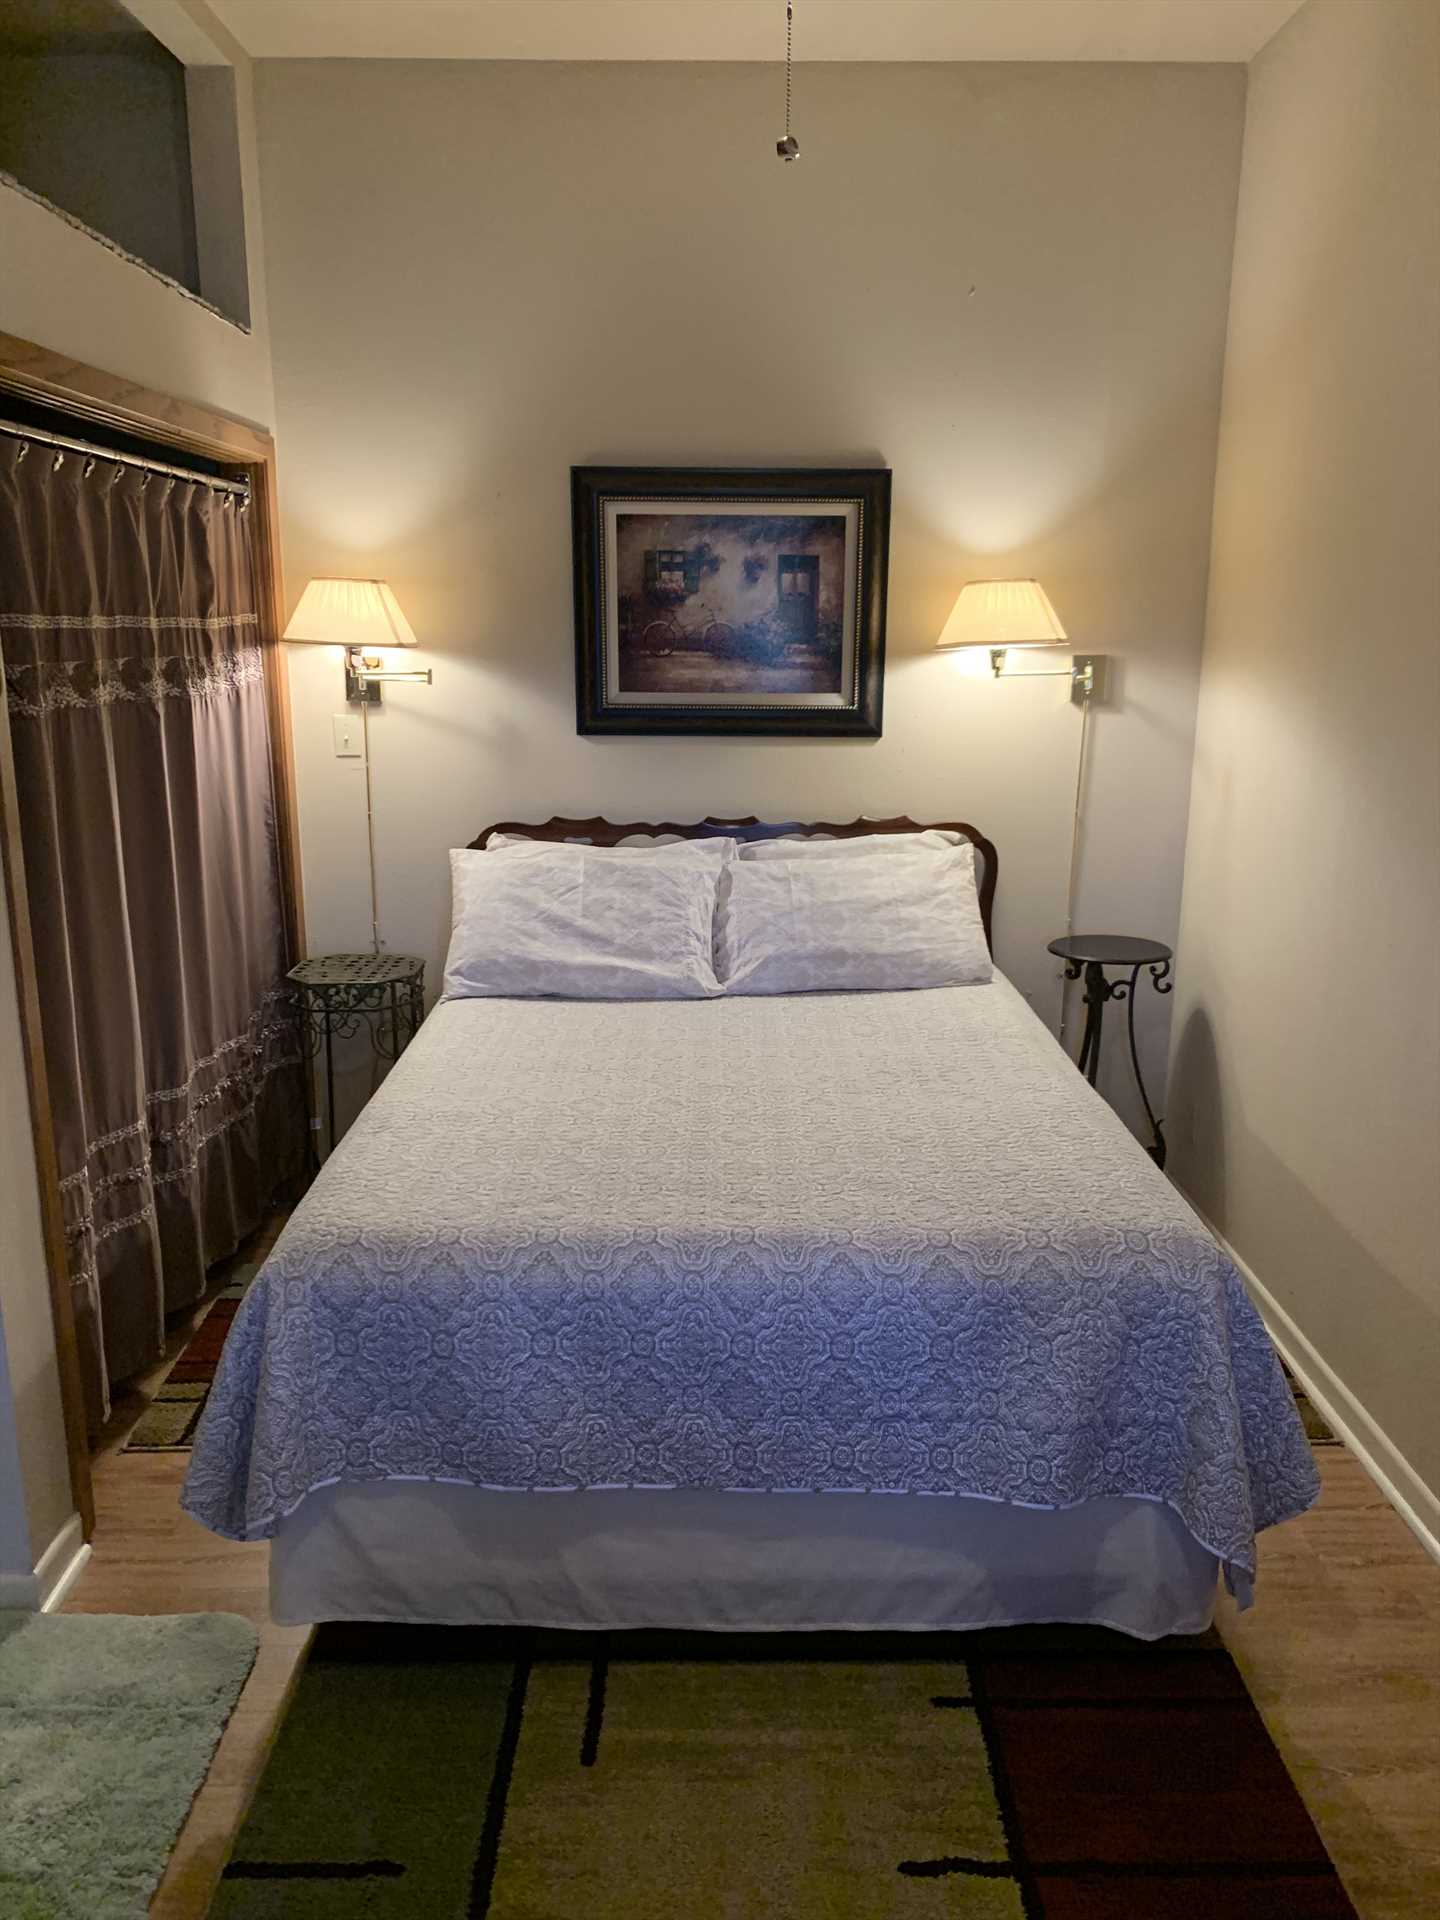 The comfy queen-sized bed and full bath both include soft and clean linens.